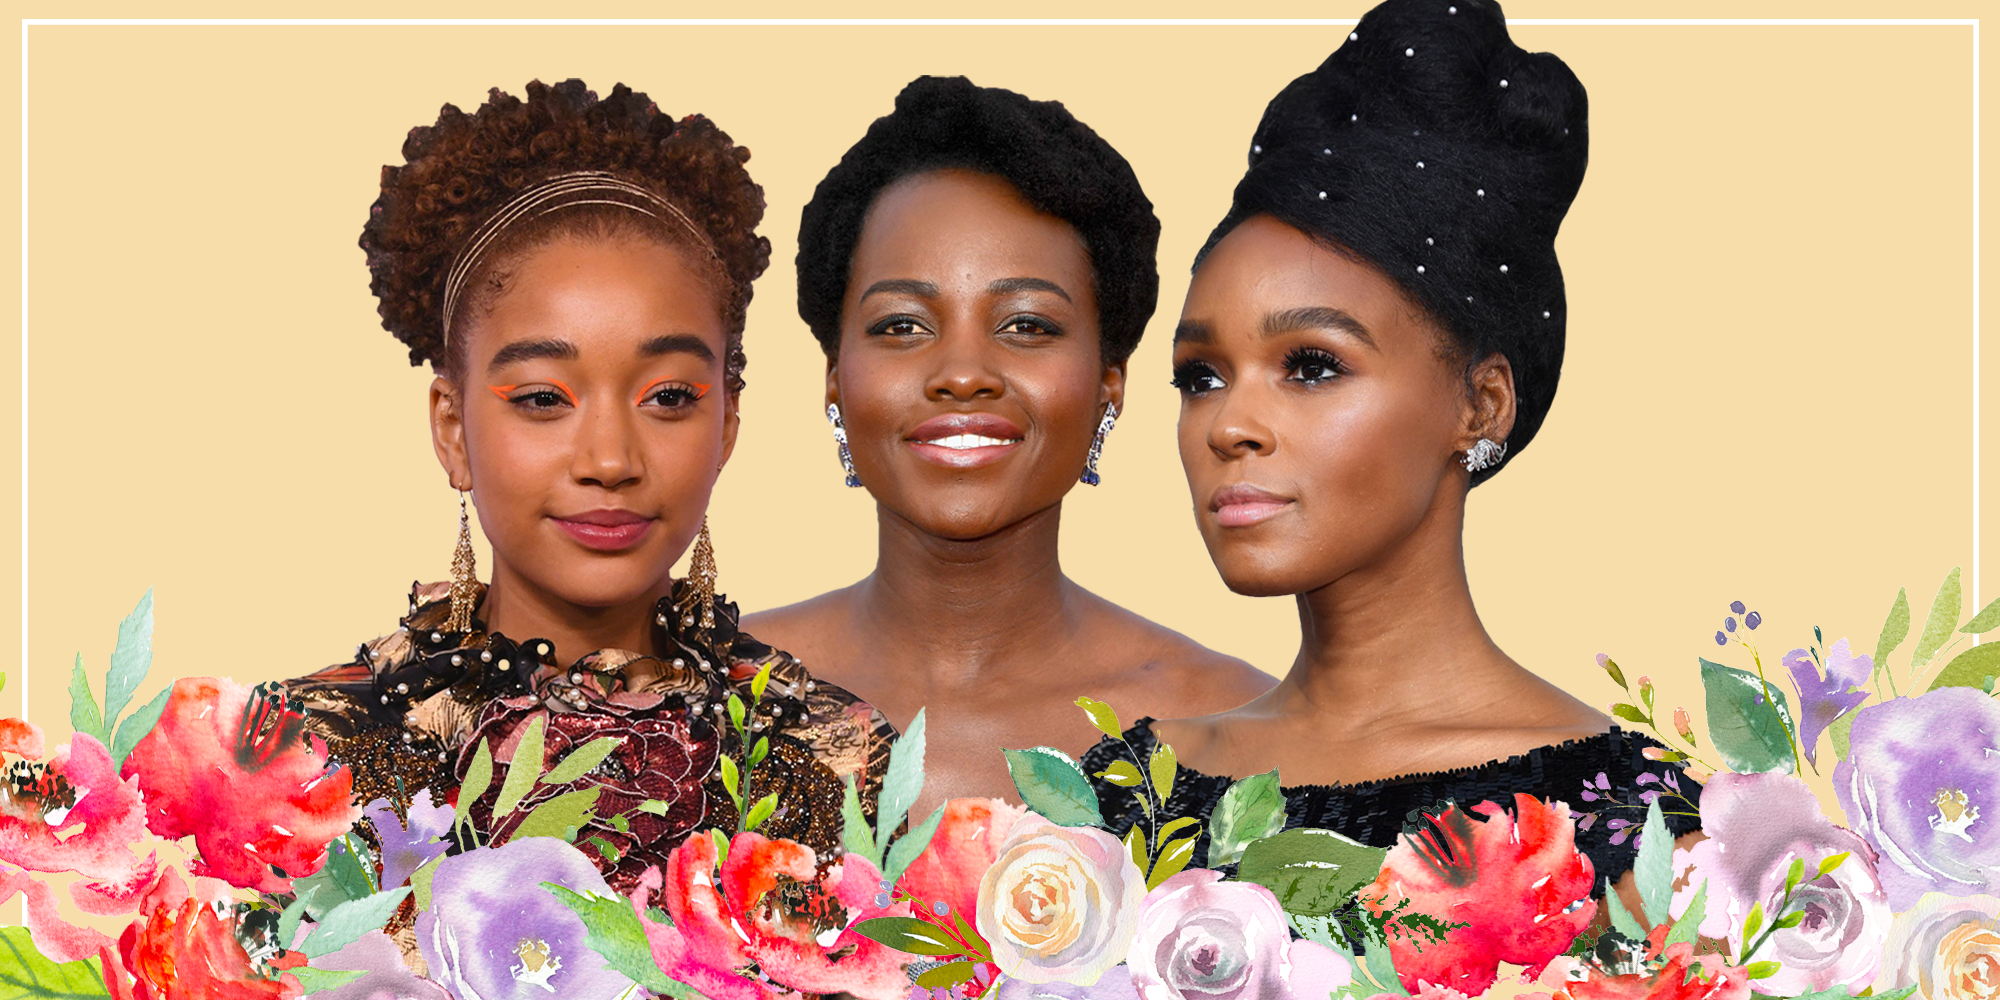 20 Natural Hairstyles to Wear at a Wedding